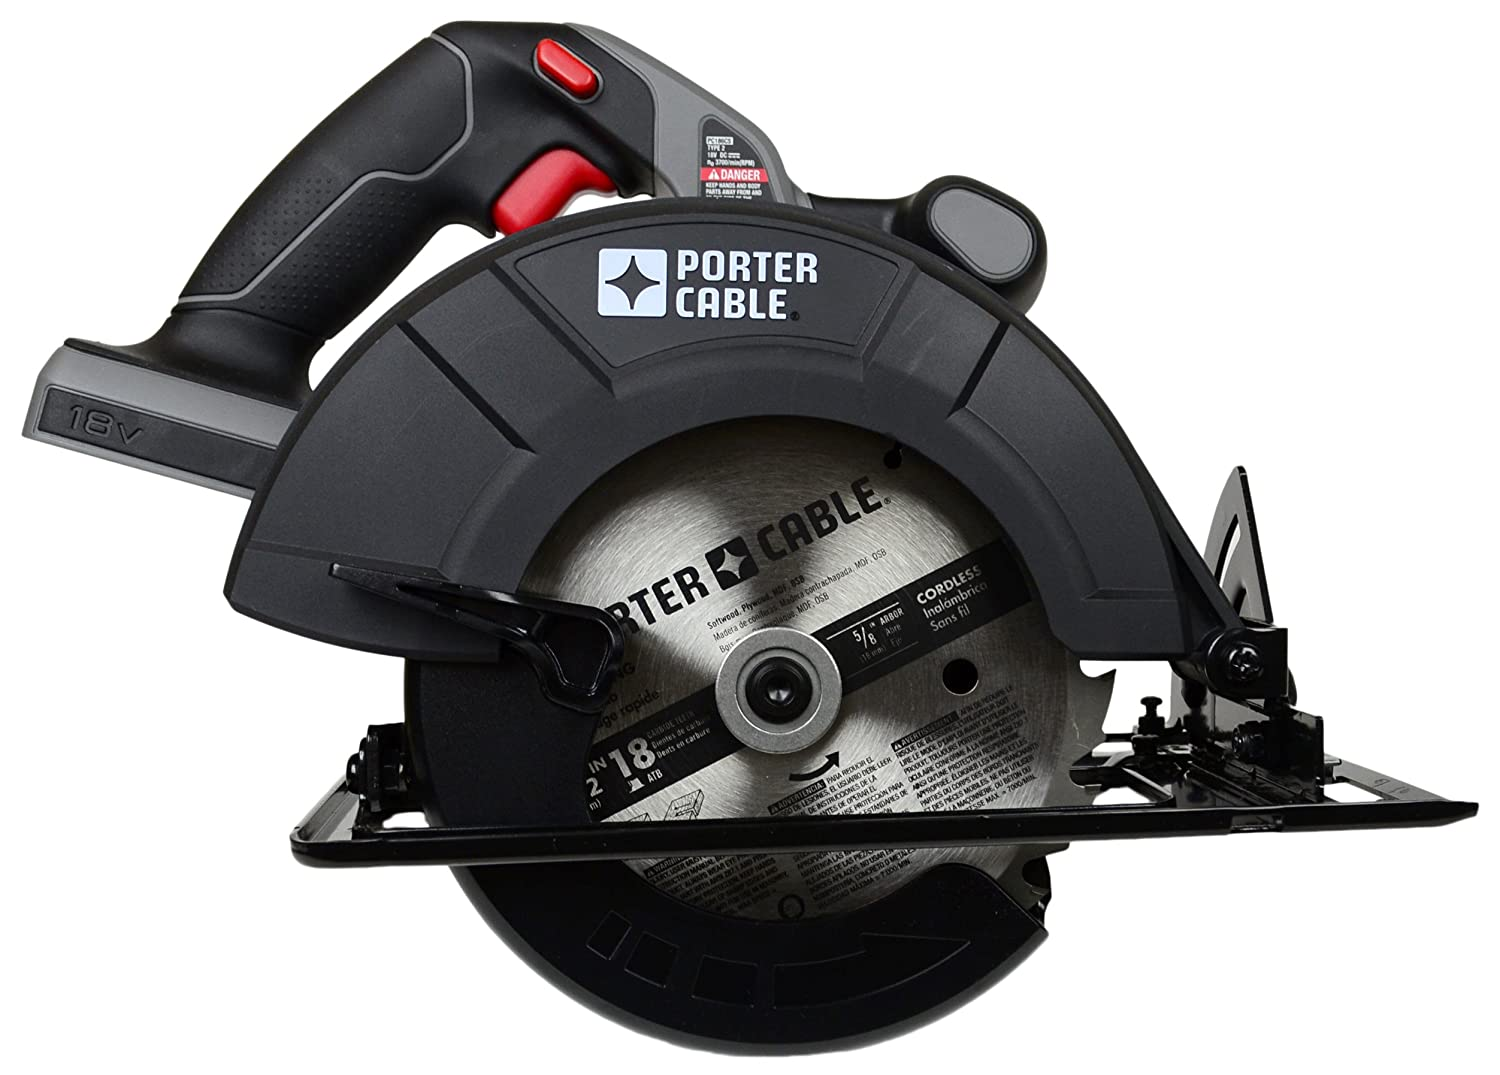 Porter cable pc186cs 18 volt cordless 6 12 inch circular saw bare porter cable pc186cs 18 volt cordless 6 12 inch circular saw bare tool tool only no battery power circular saws amazon greentooth Choice Image